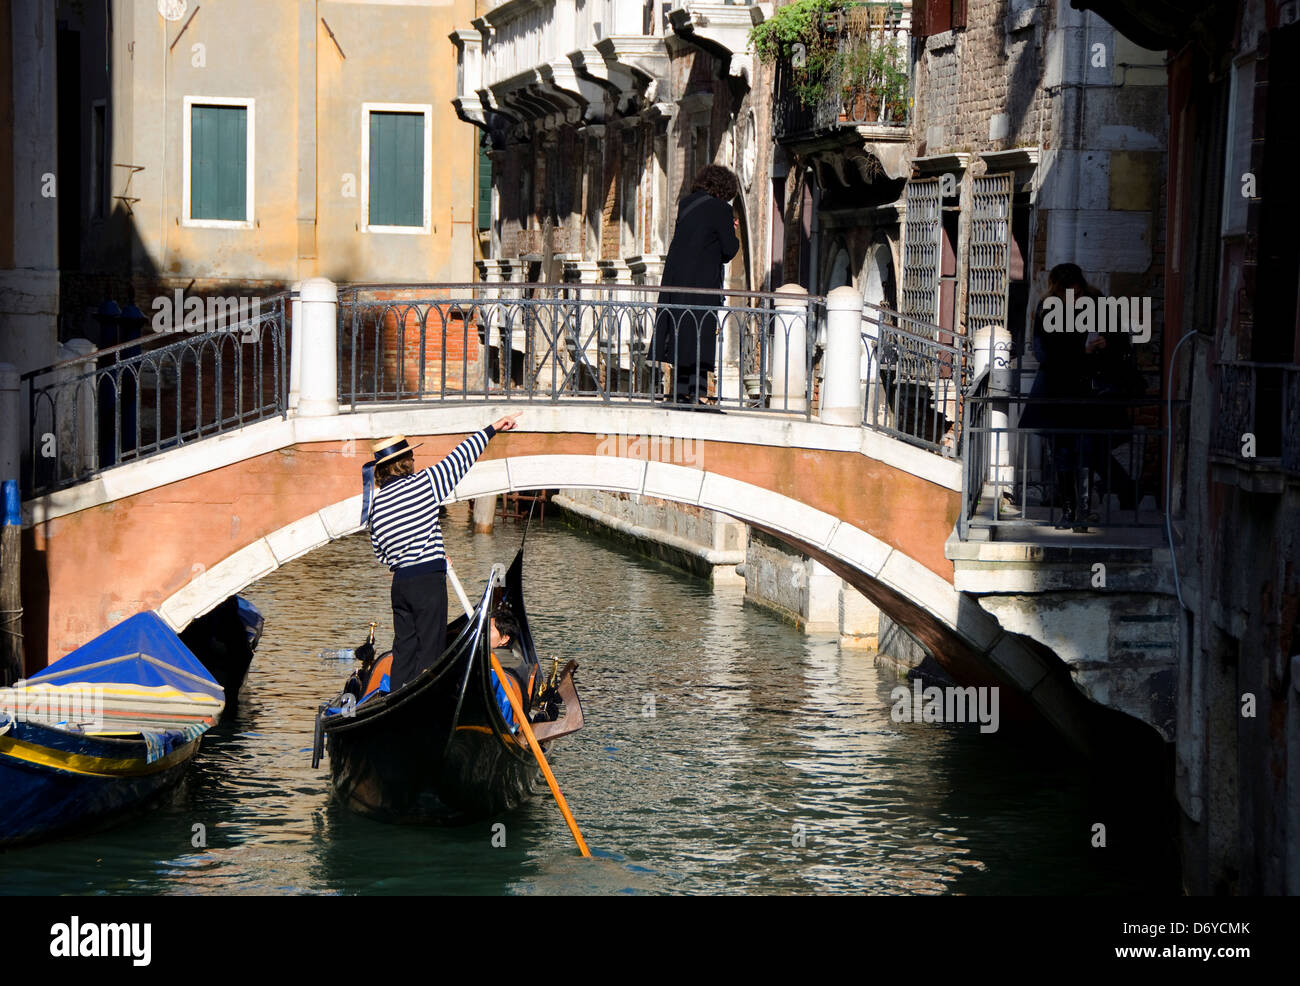 Gondolier pointing to a building where Vivaldi once resided, Grand Canal, Venice, Veneto, Italy - Stock Image